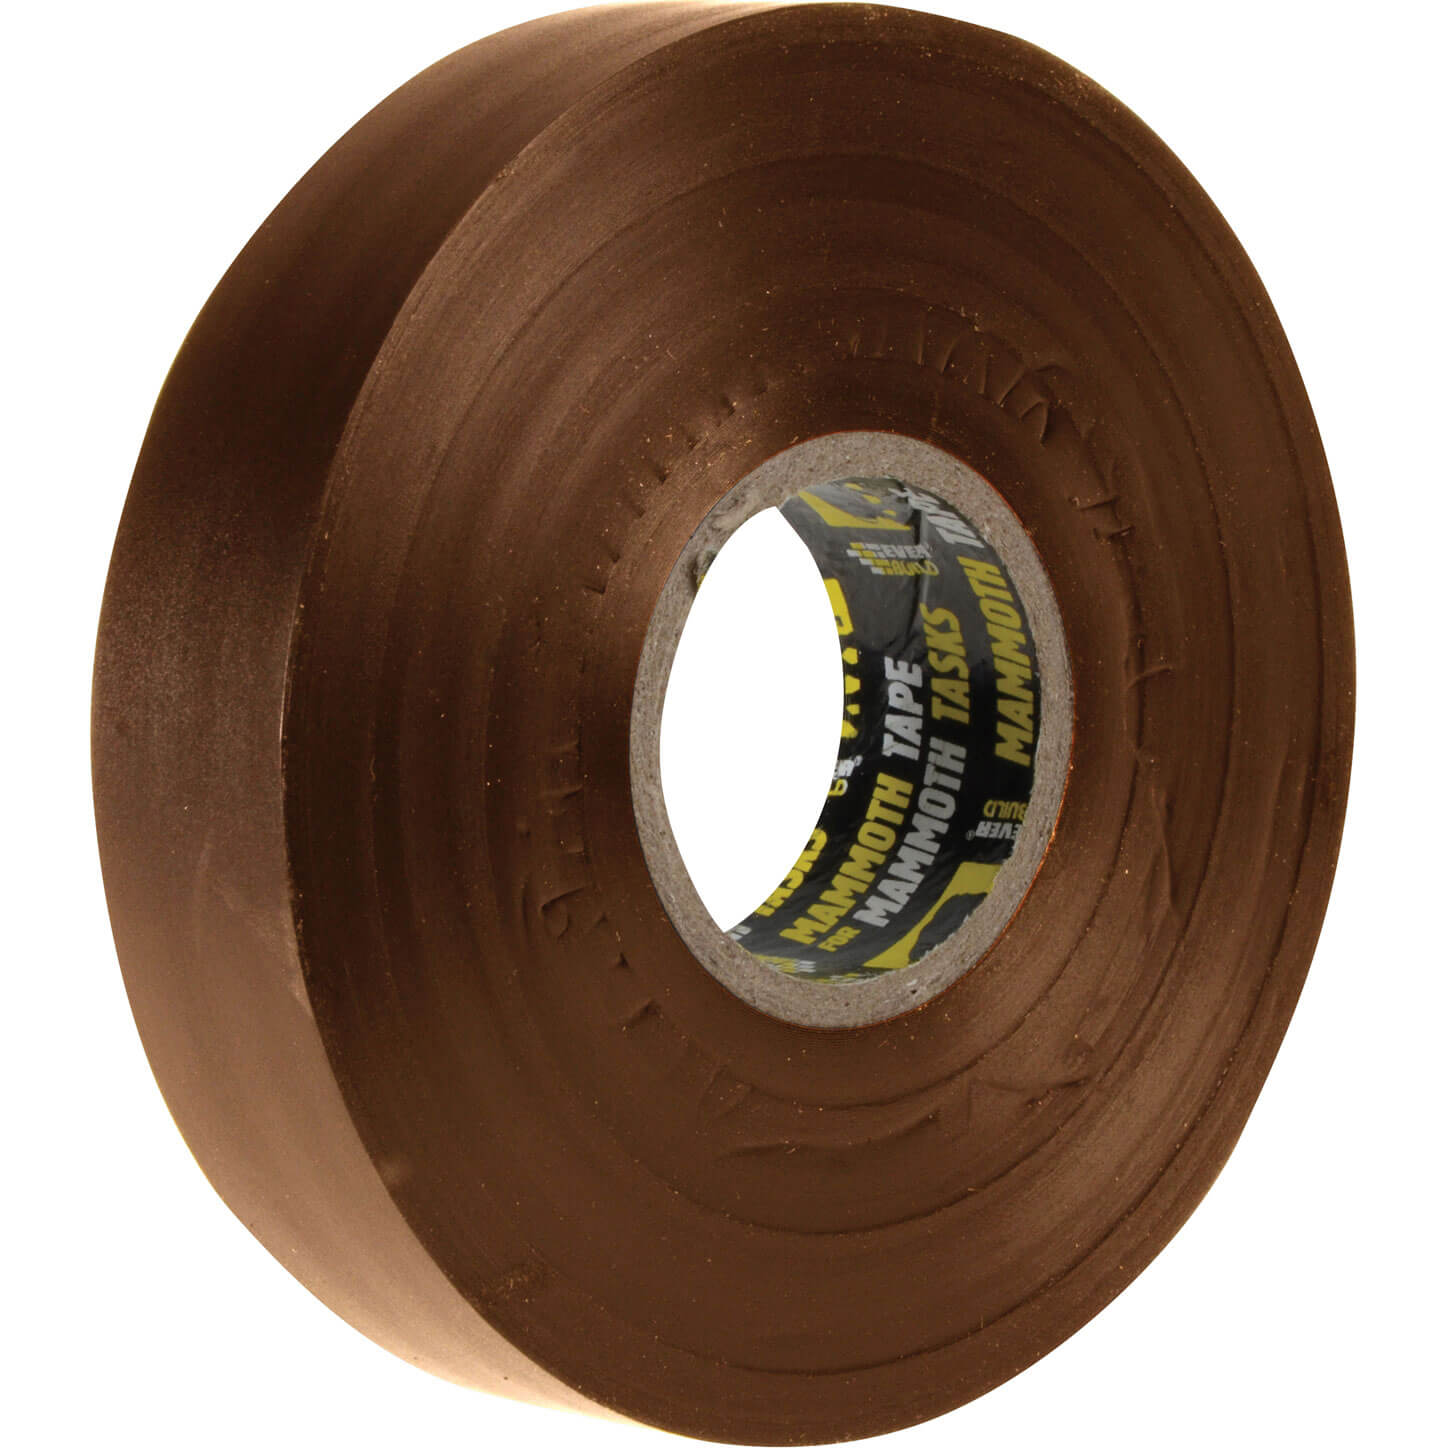 Image of Everbuild Electrical Insulation Tape Brown 19mm 33m